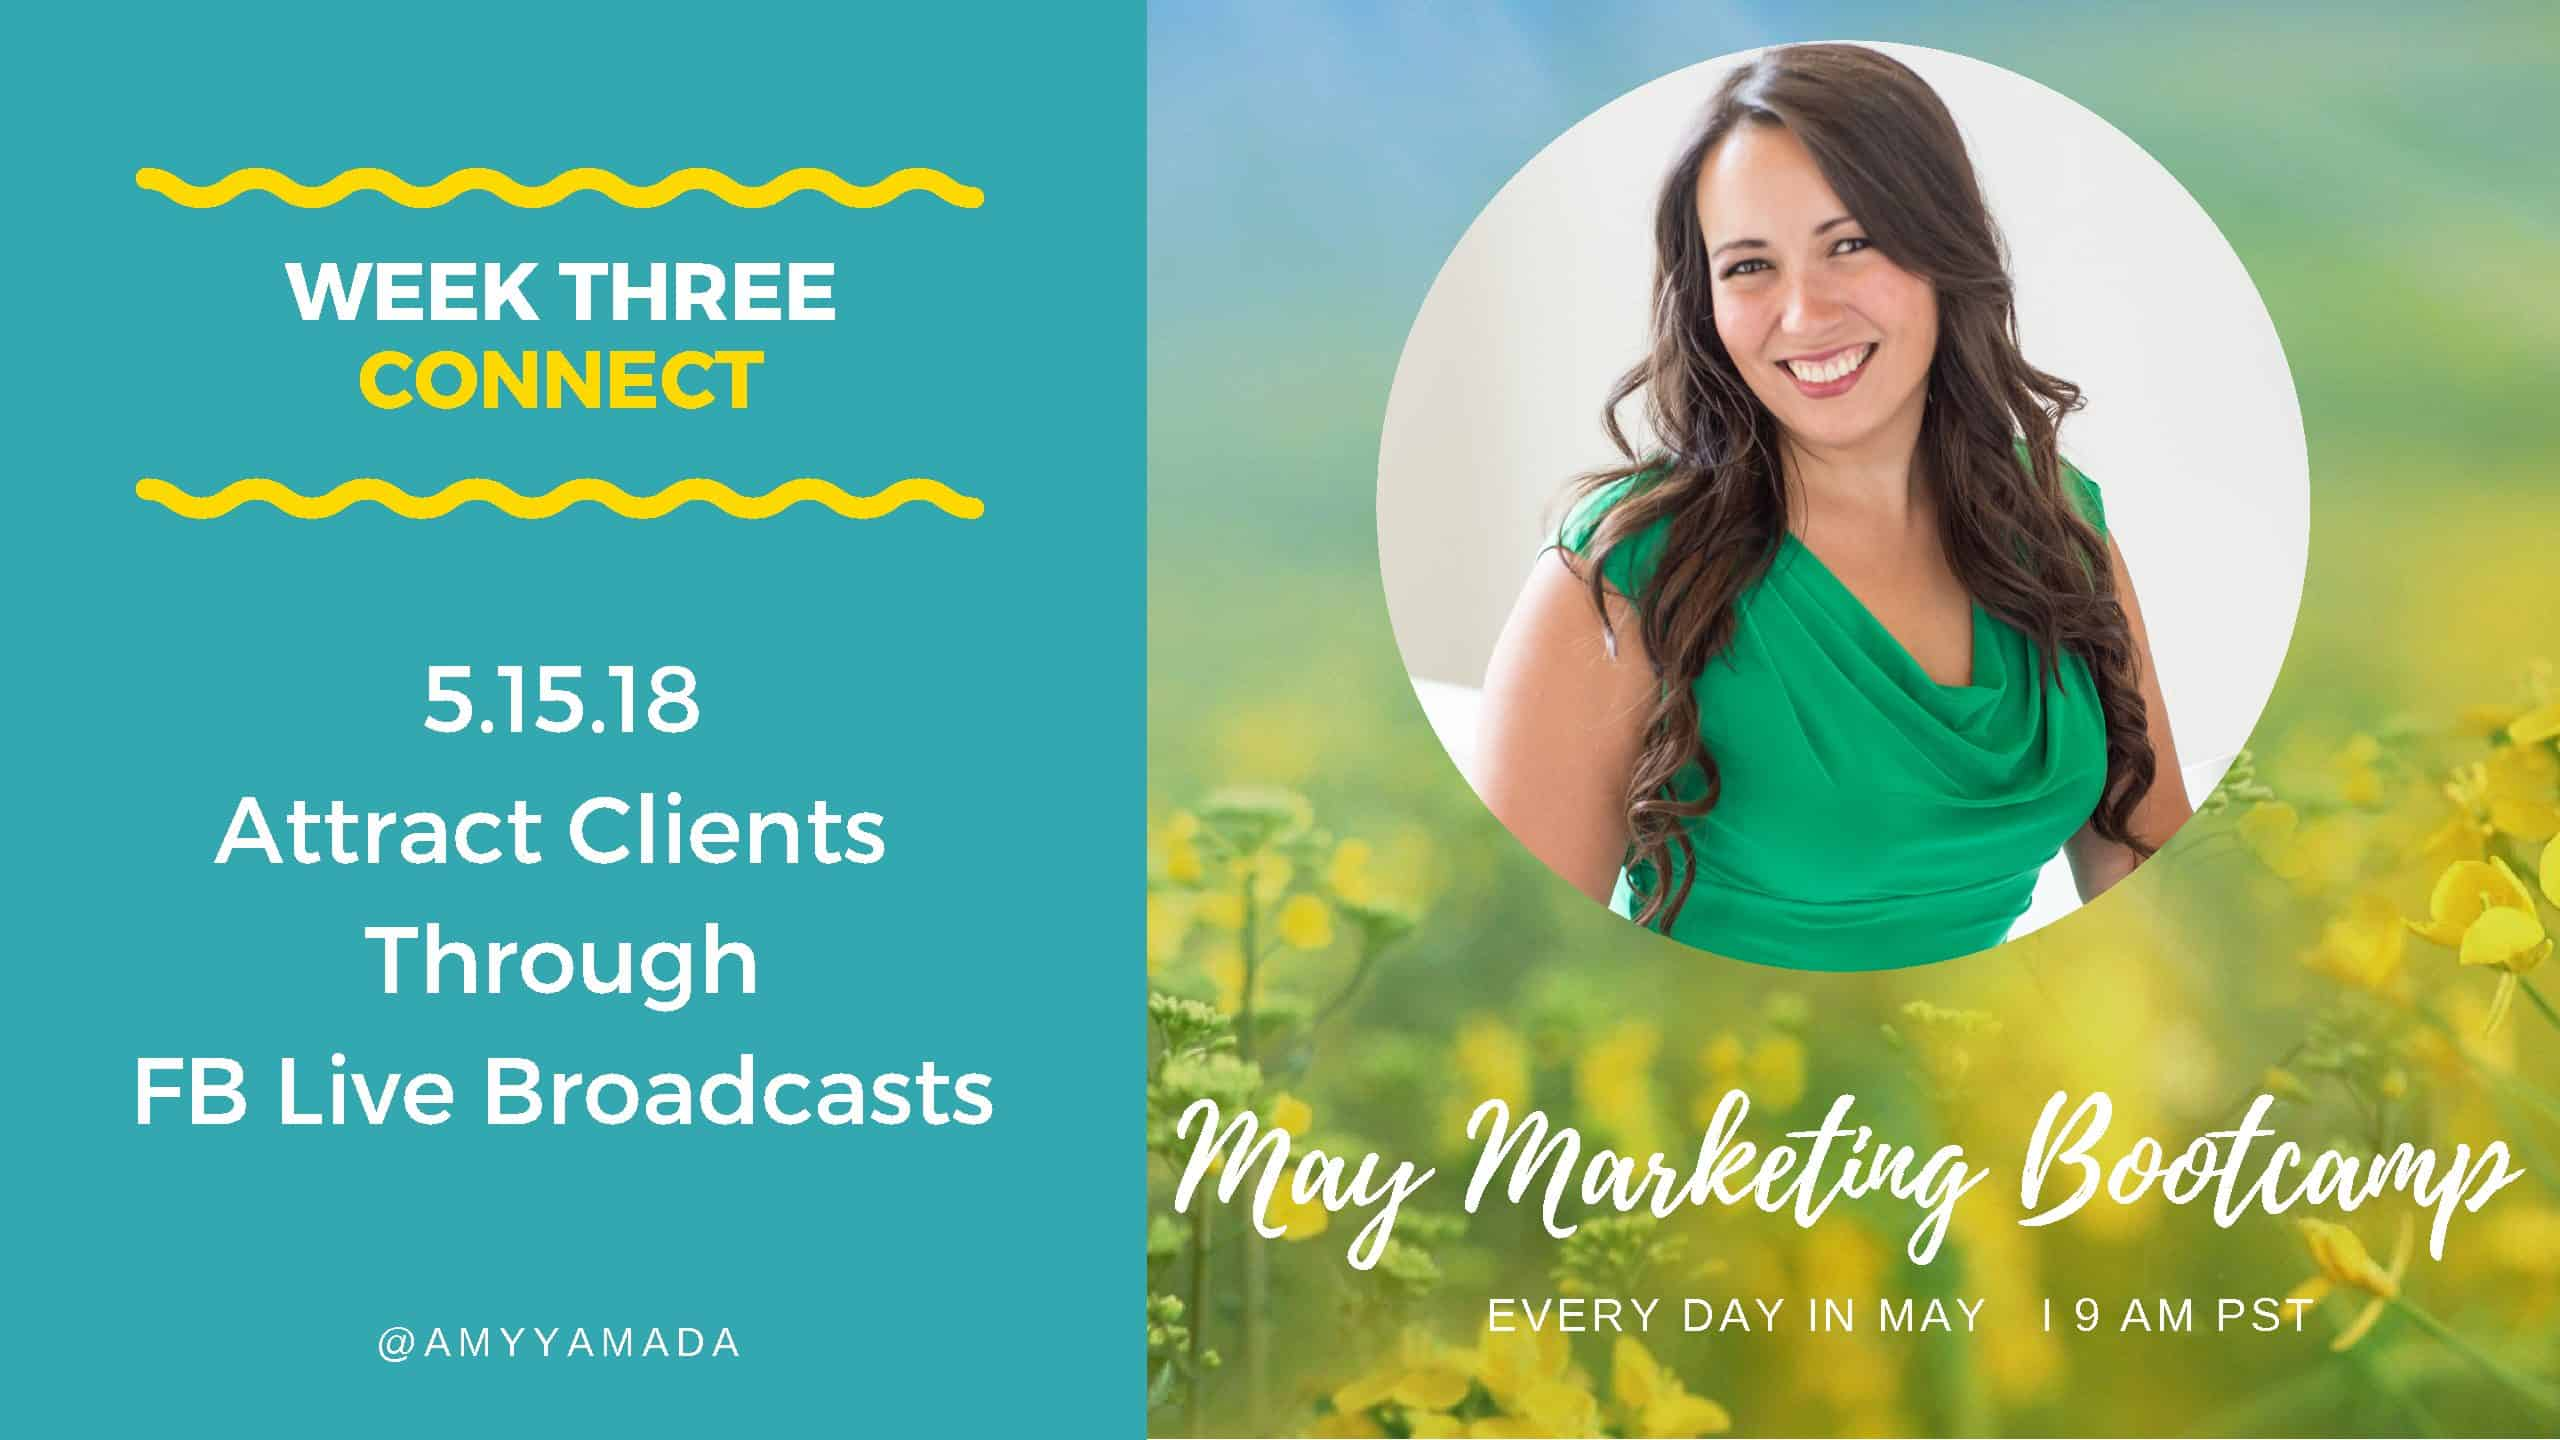 Attracting clients through Facebook Live Broadcasts